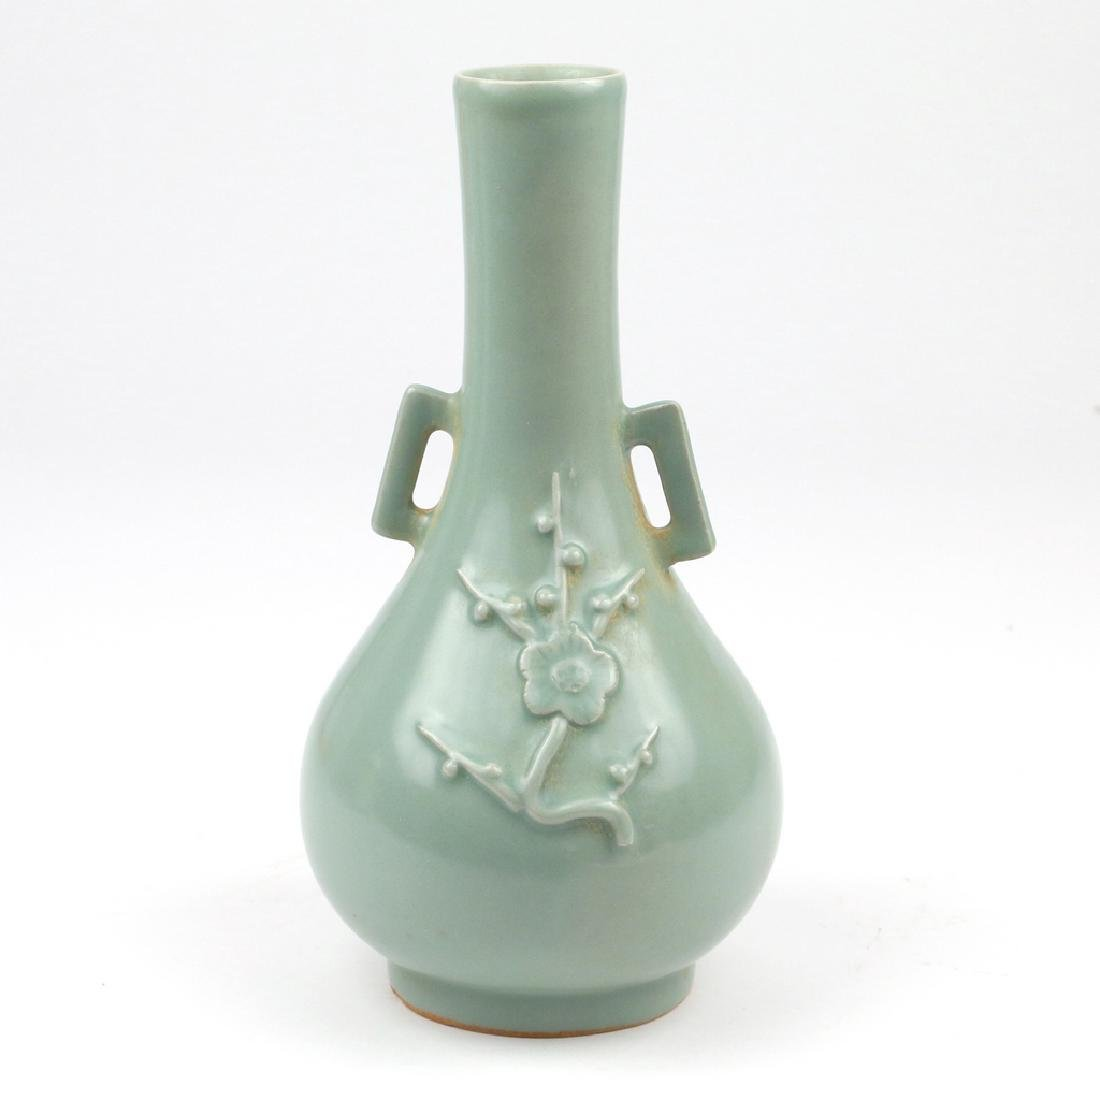 CHINESE CELADON BOTTLE VASE